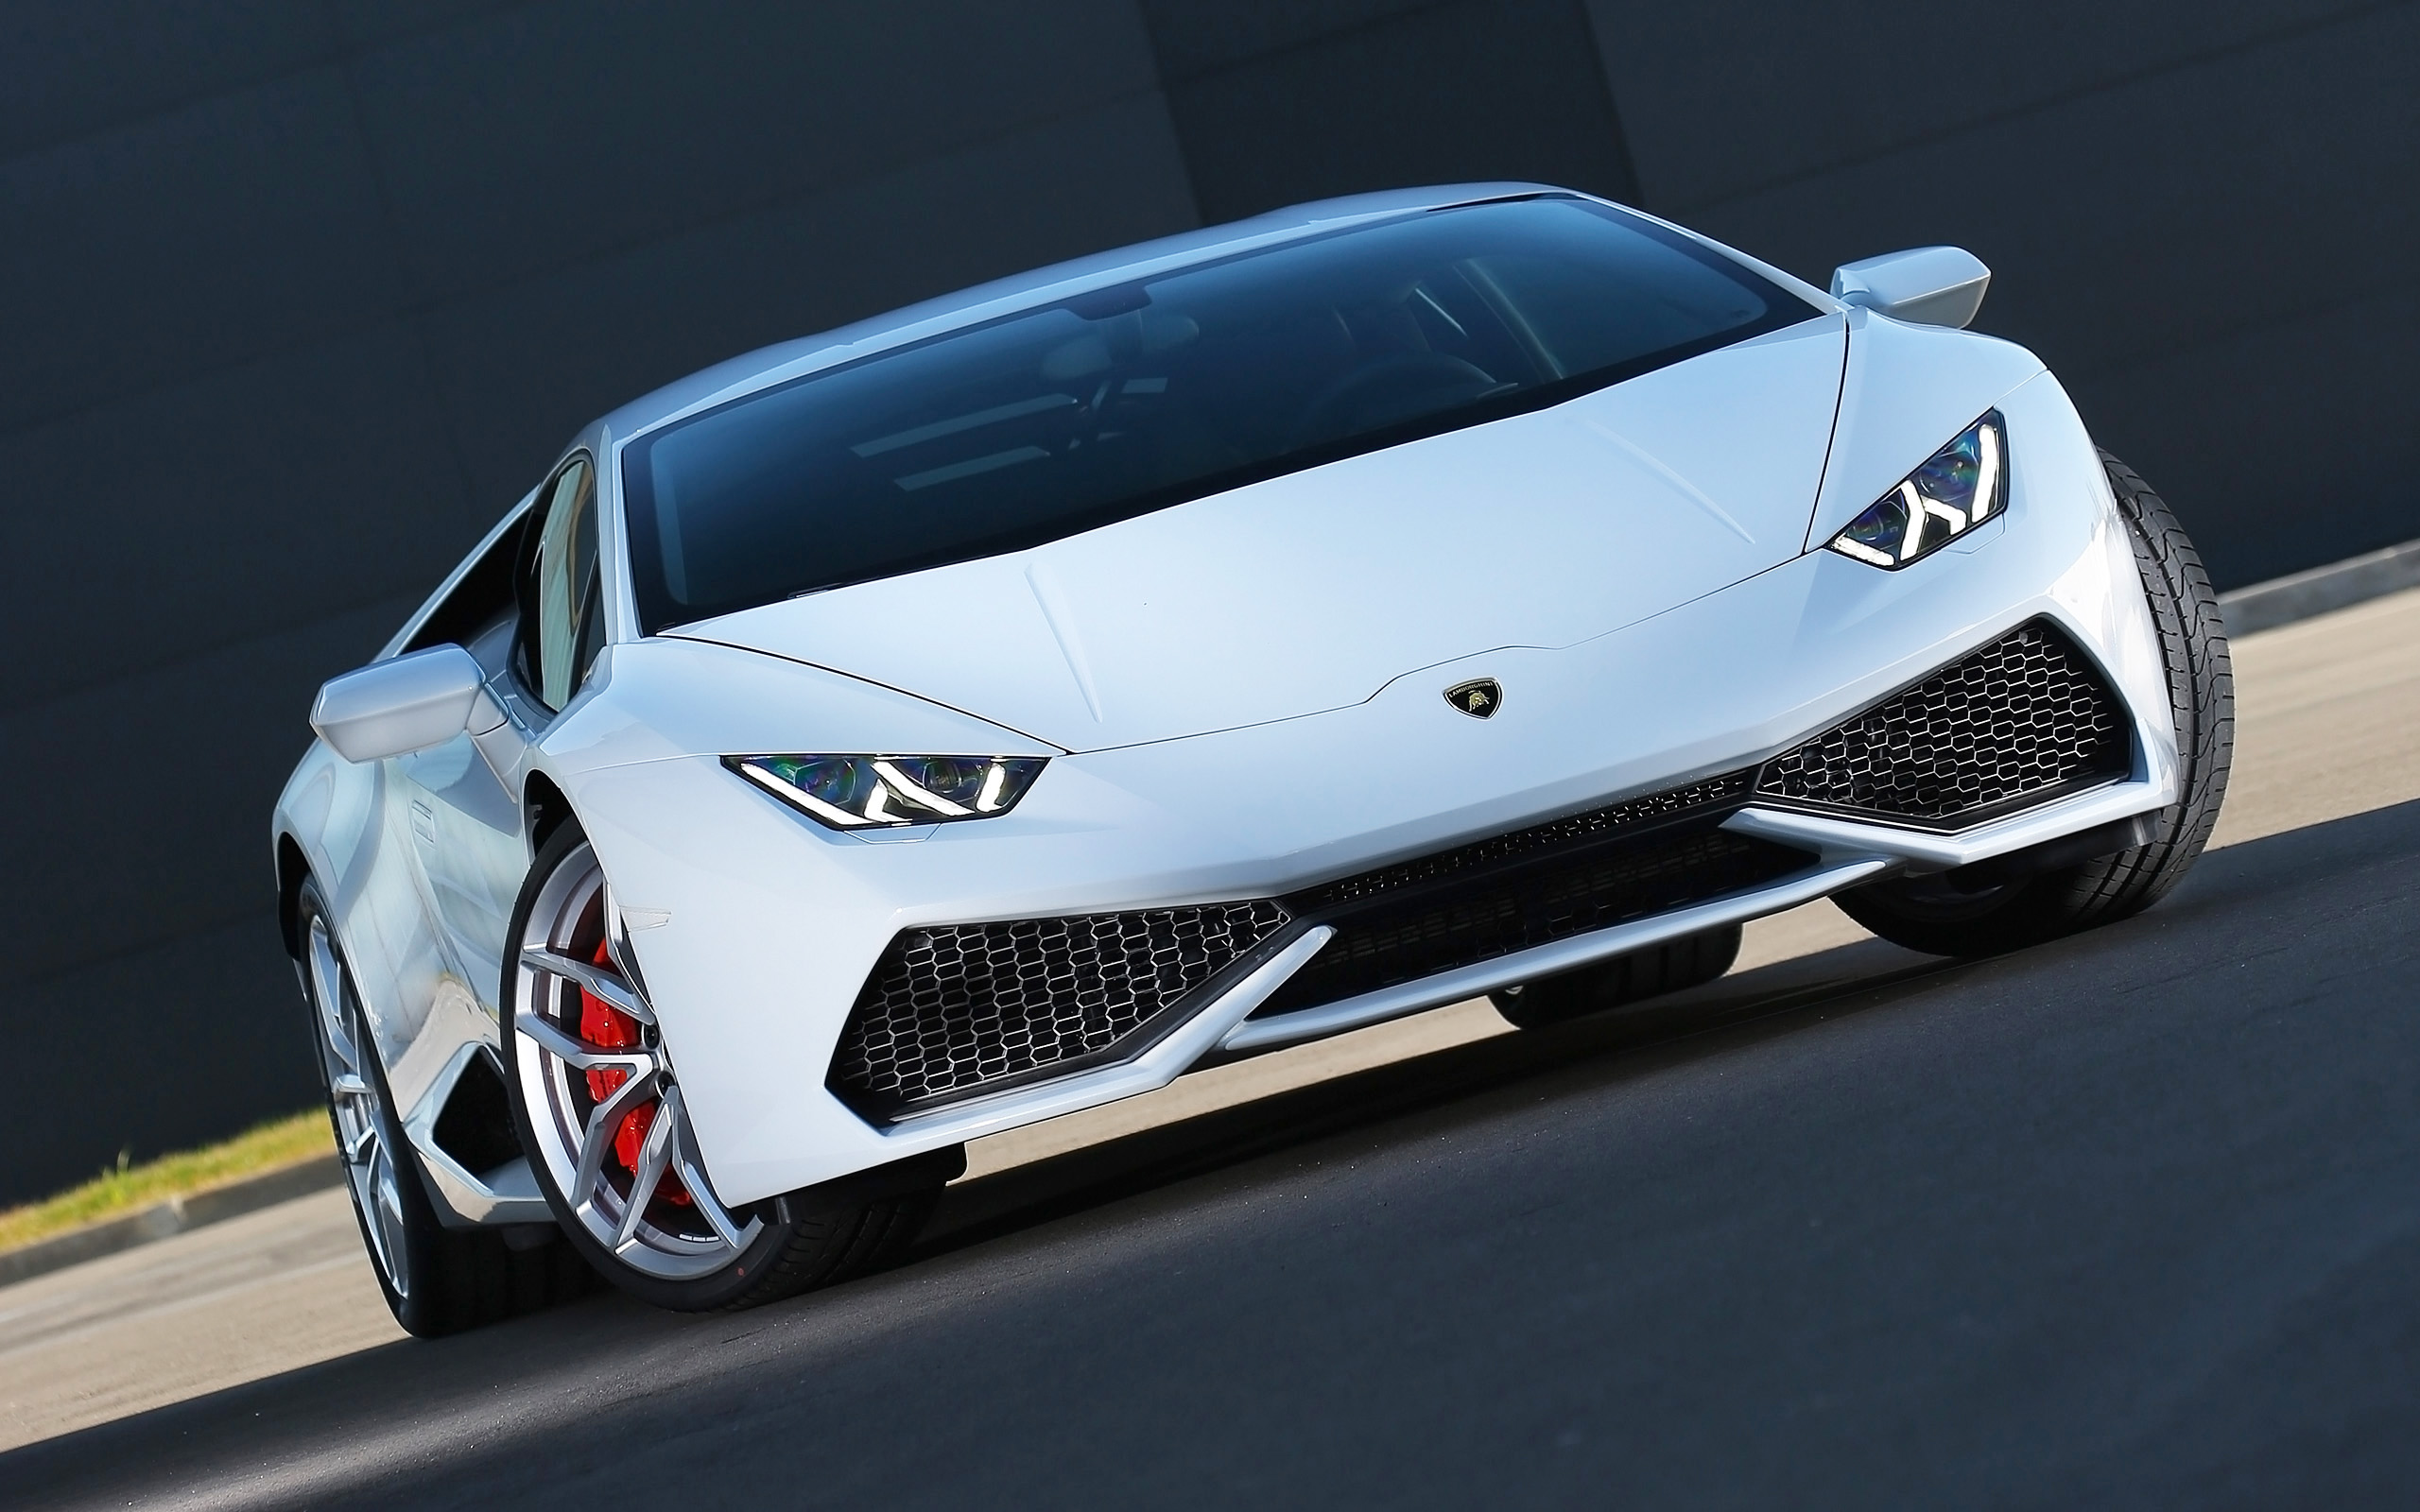 lamborghini huracan lp610 4 2014 wallpaper hd car wallpapers id 4815. Black Bedroom Furniture Sets. Home Design Ideas